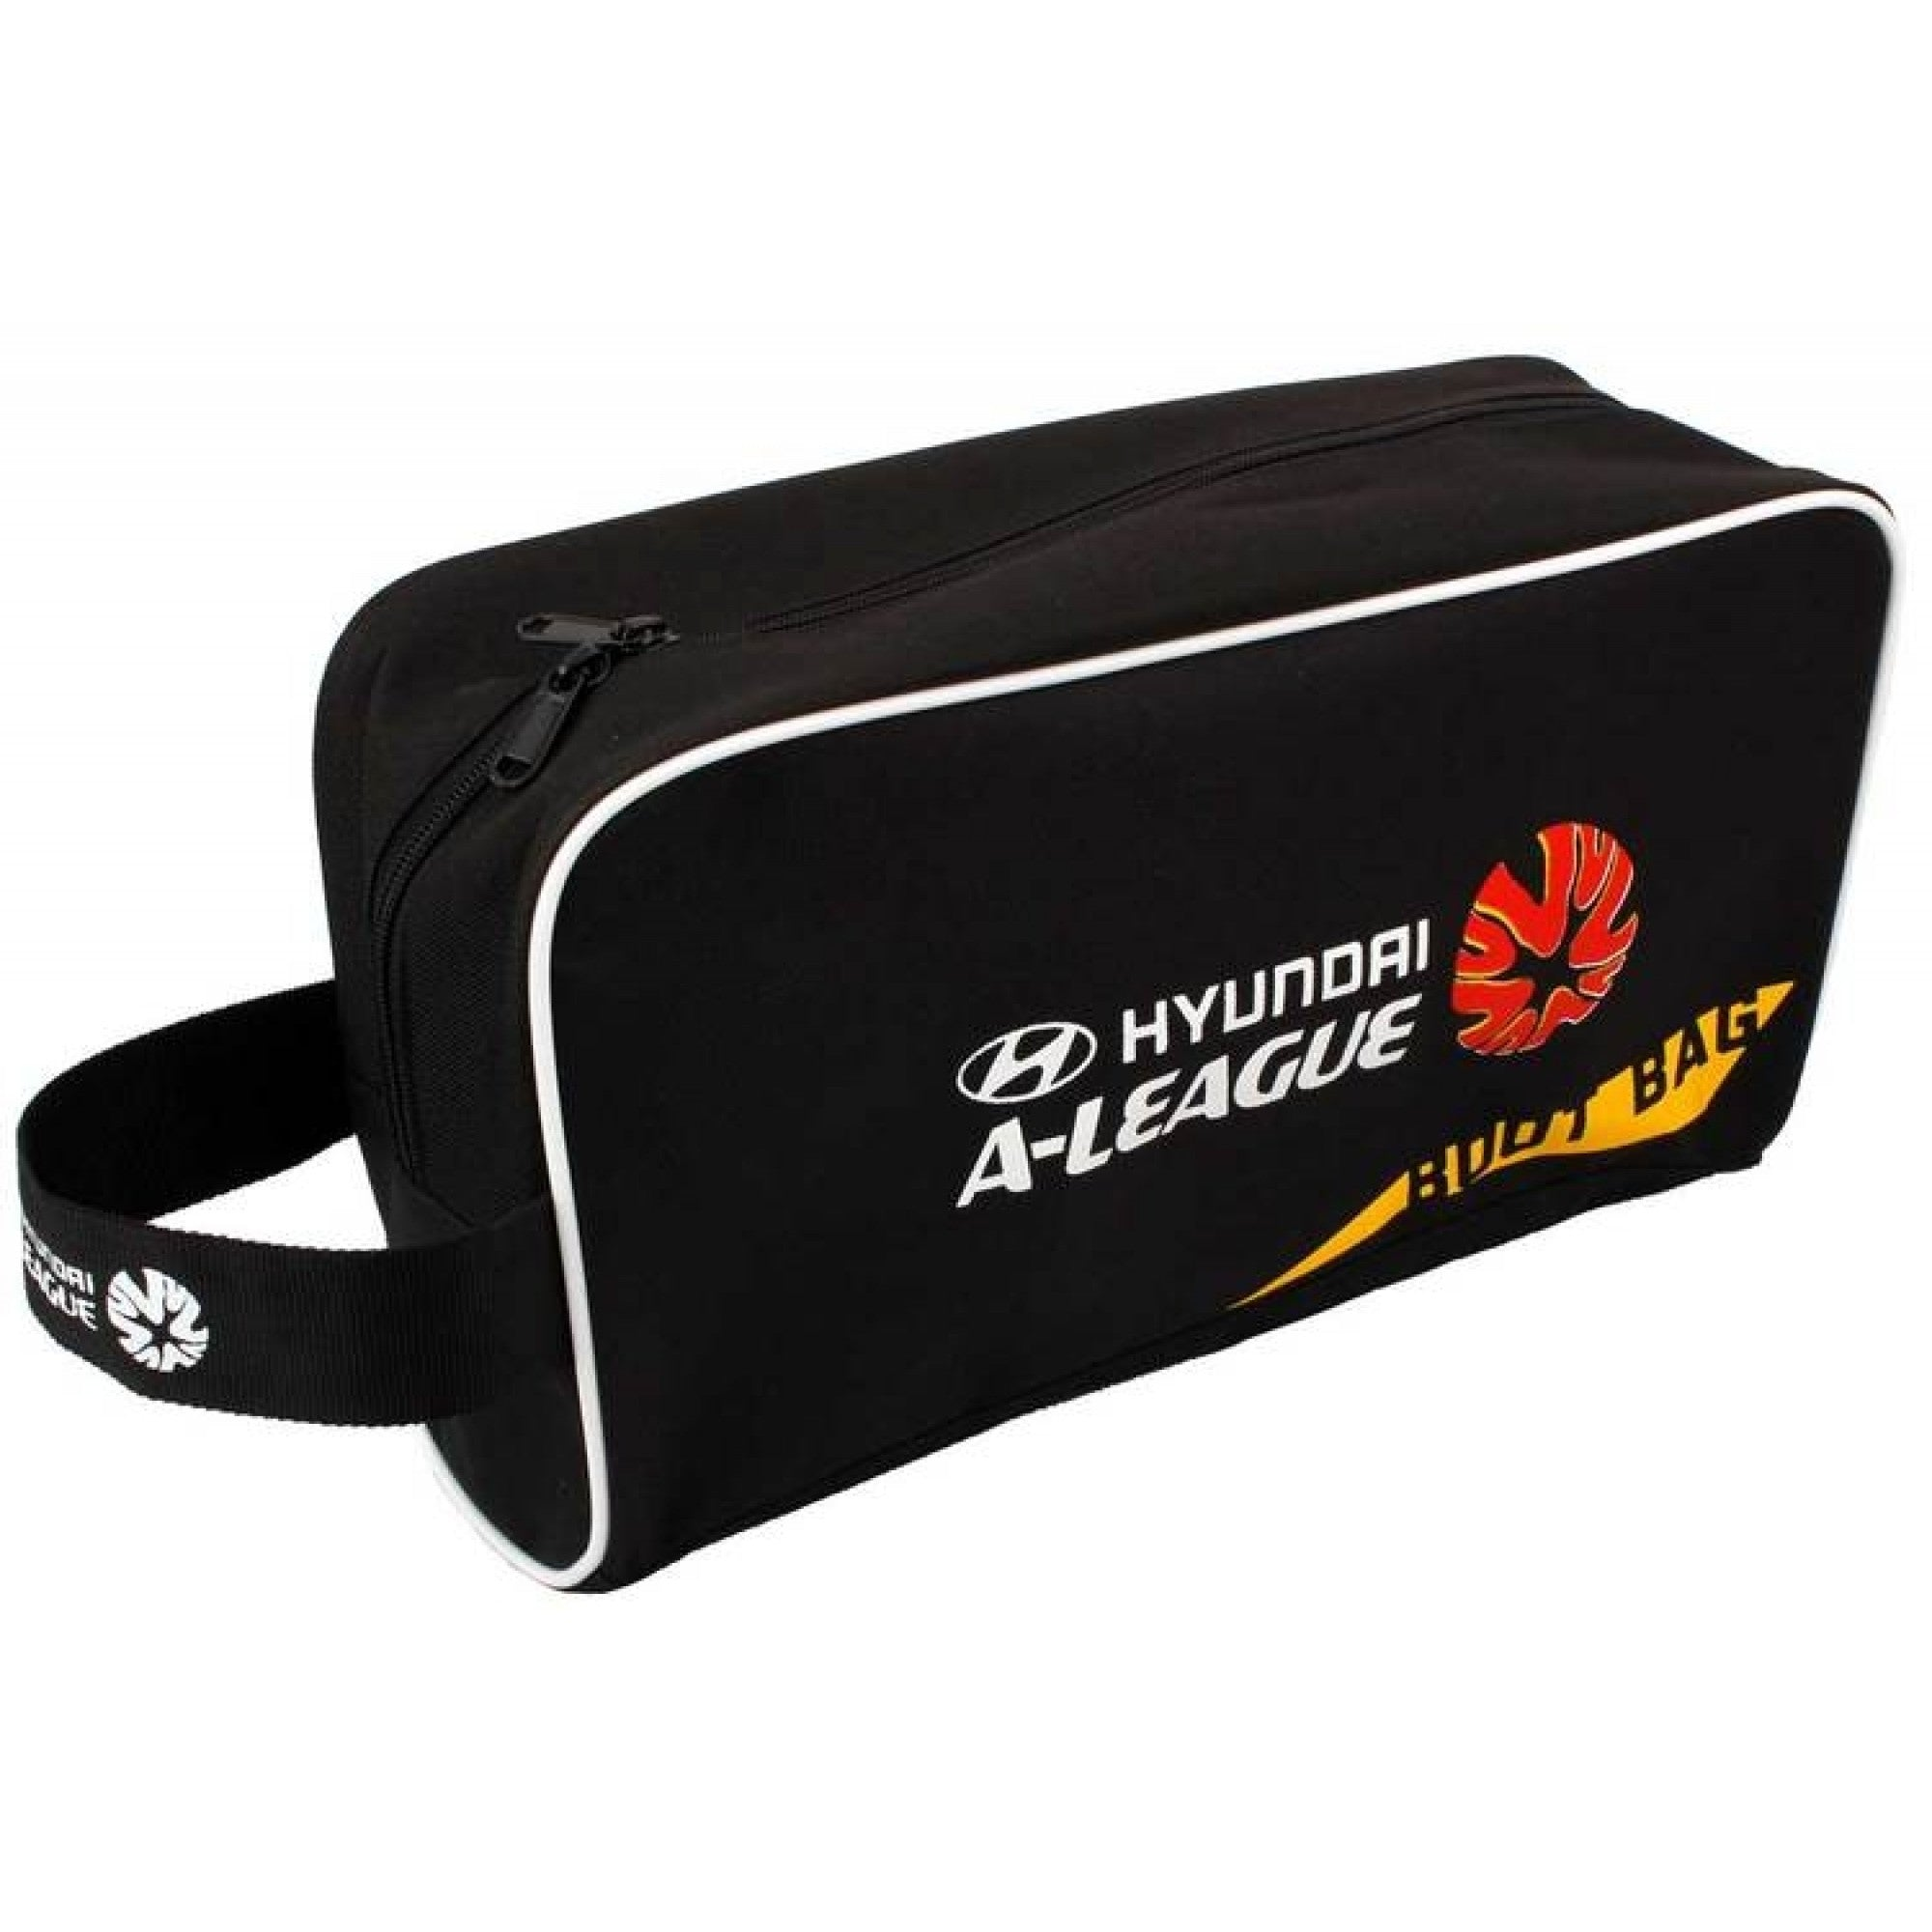 A-League Boot Bag